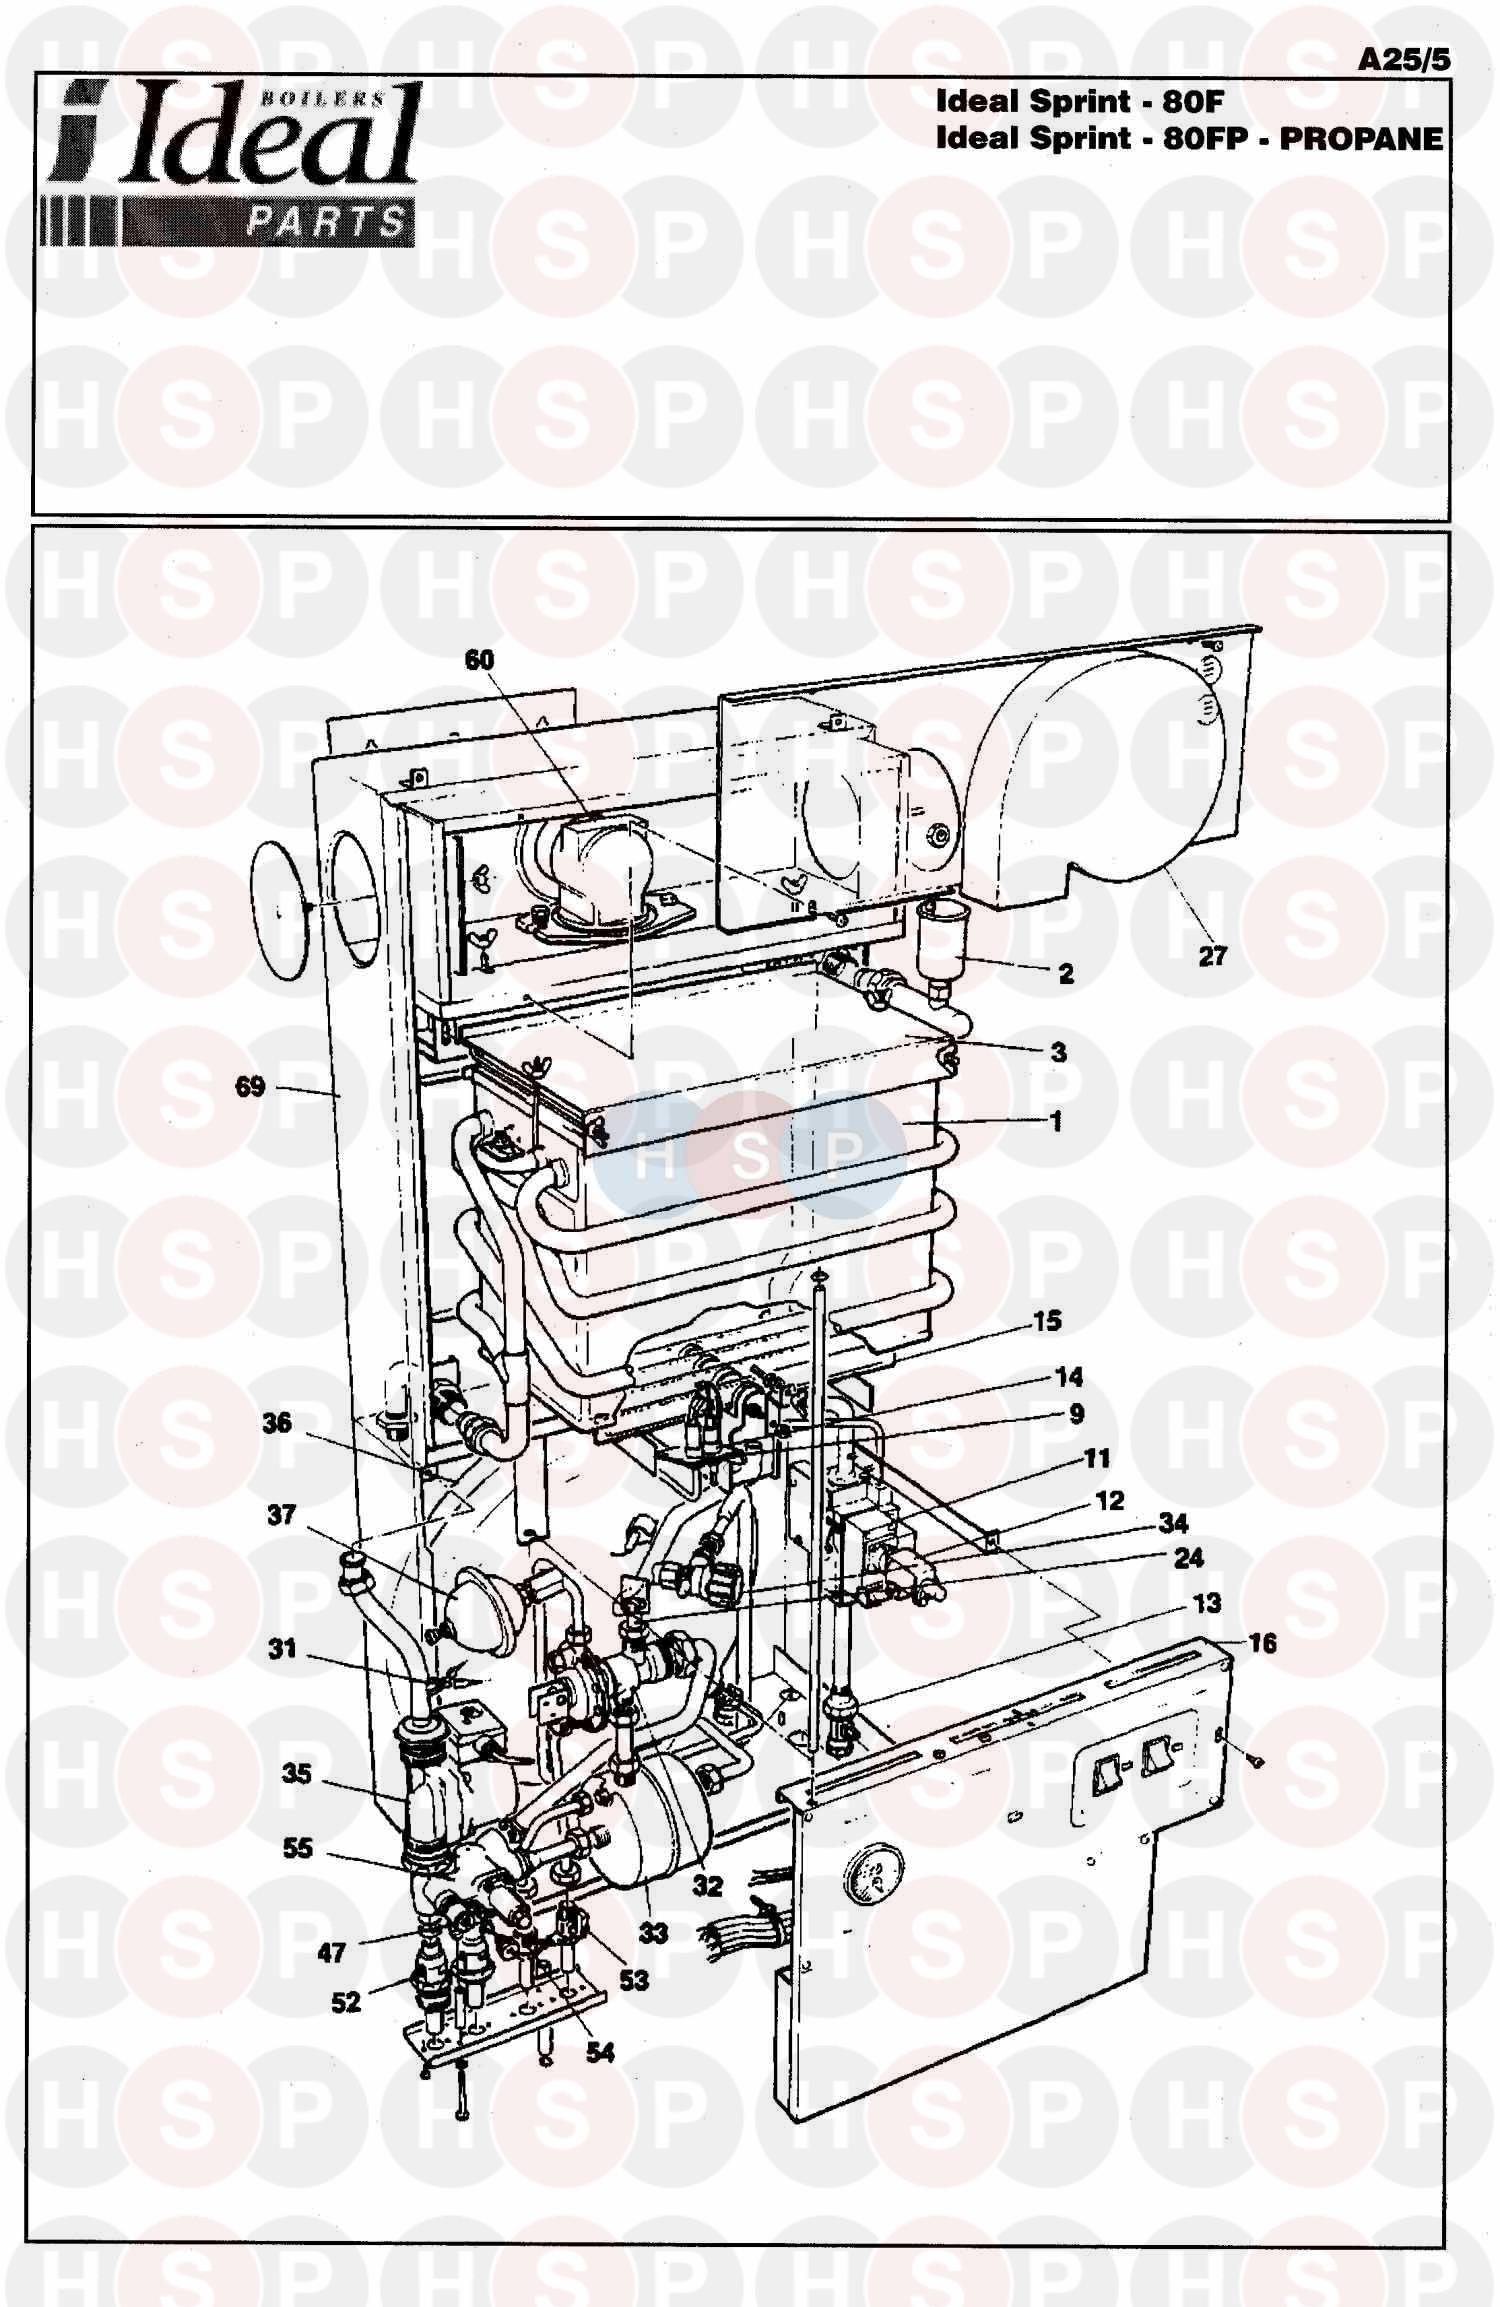 ideal sprint 80f appliance diagram  boiler assembly 1